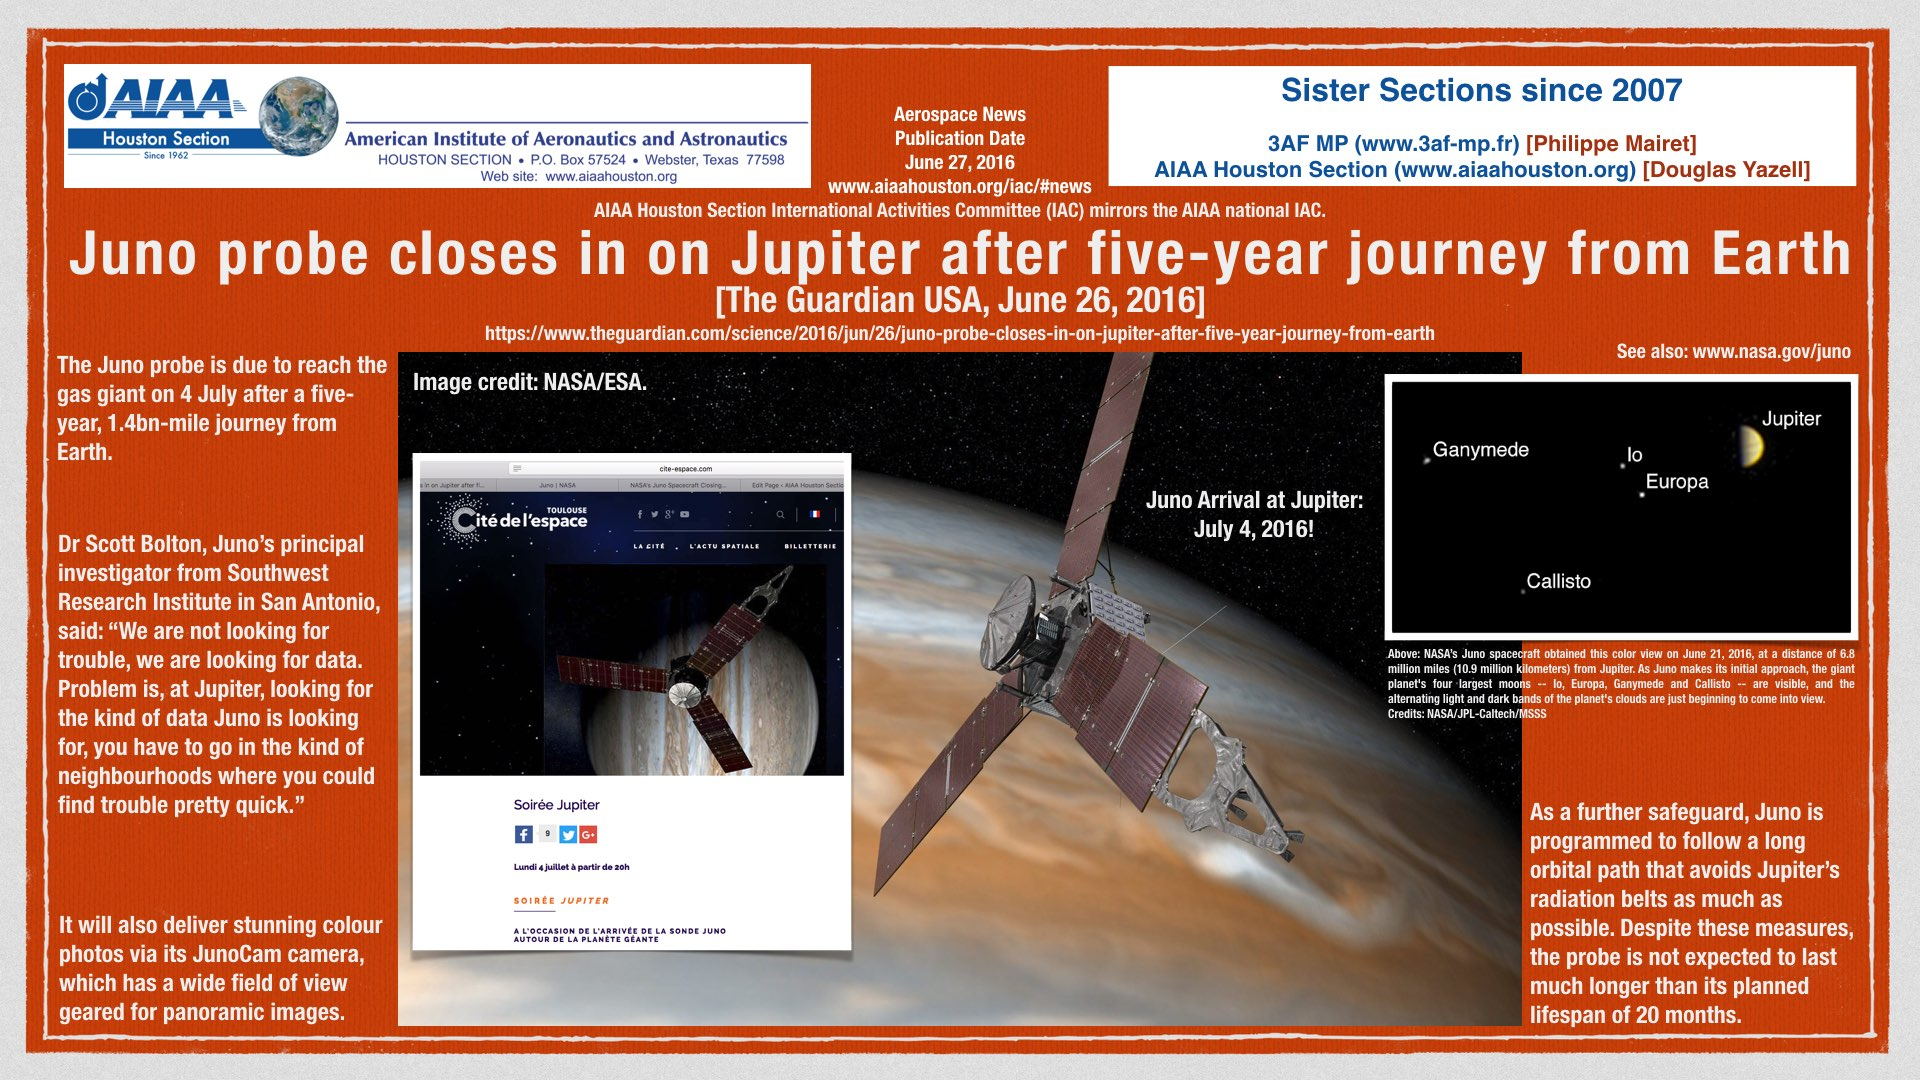 Above: Juno probe closes in on Jupiter after five-year journey from Earth. The Guardian USA, June 26, 2016. (Click to zoom.)